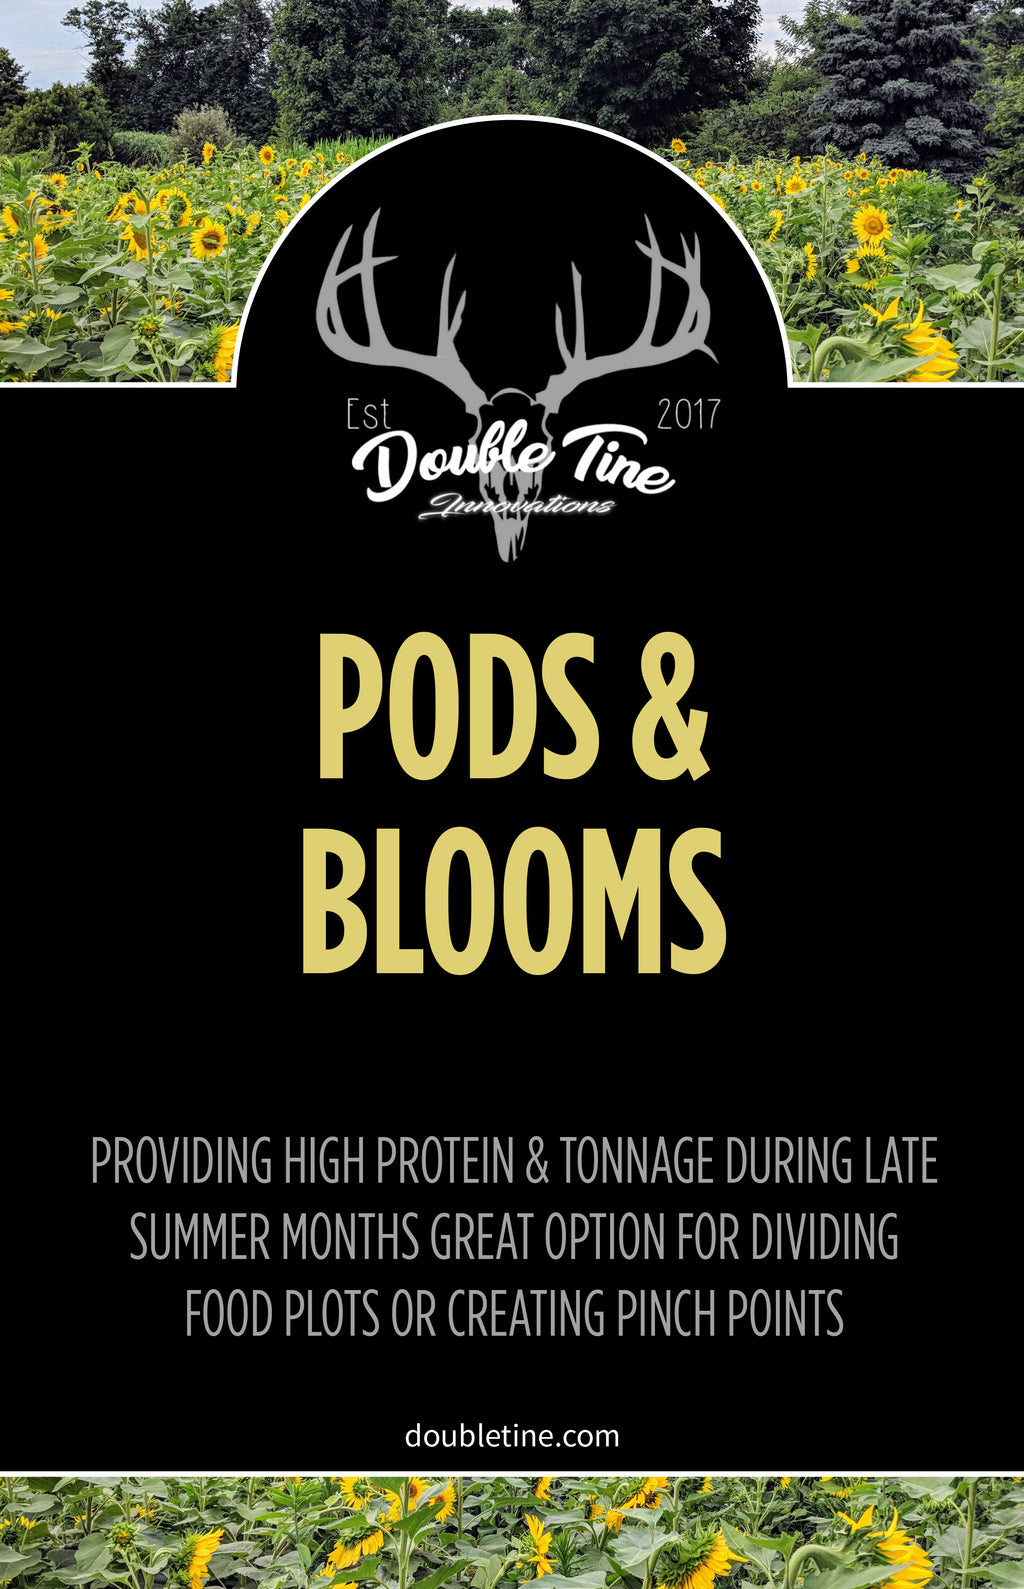 Pods & Blooms - Double Tine Innovations